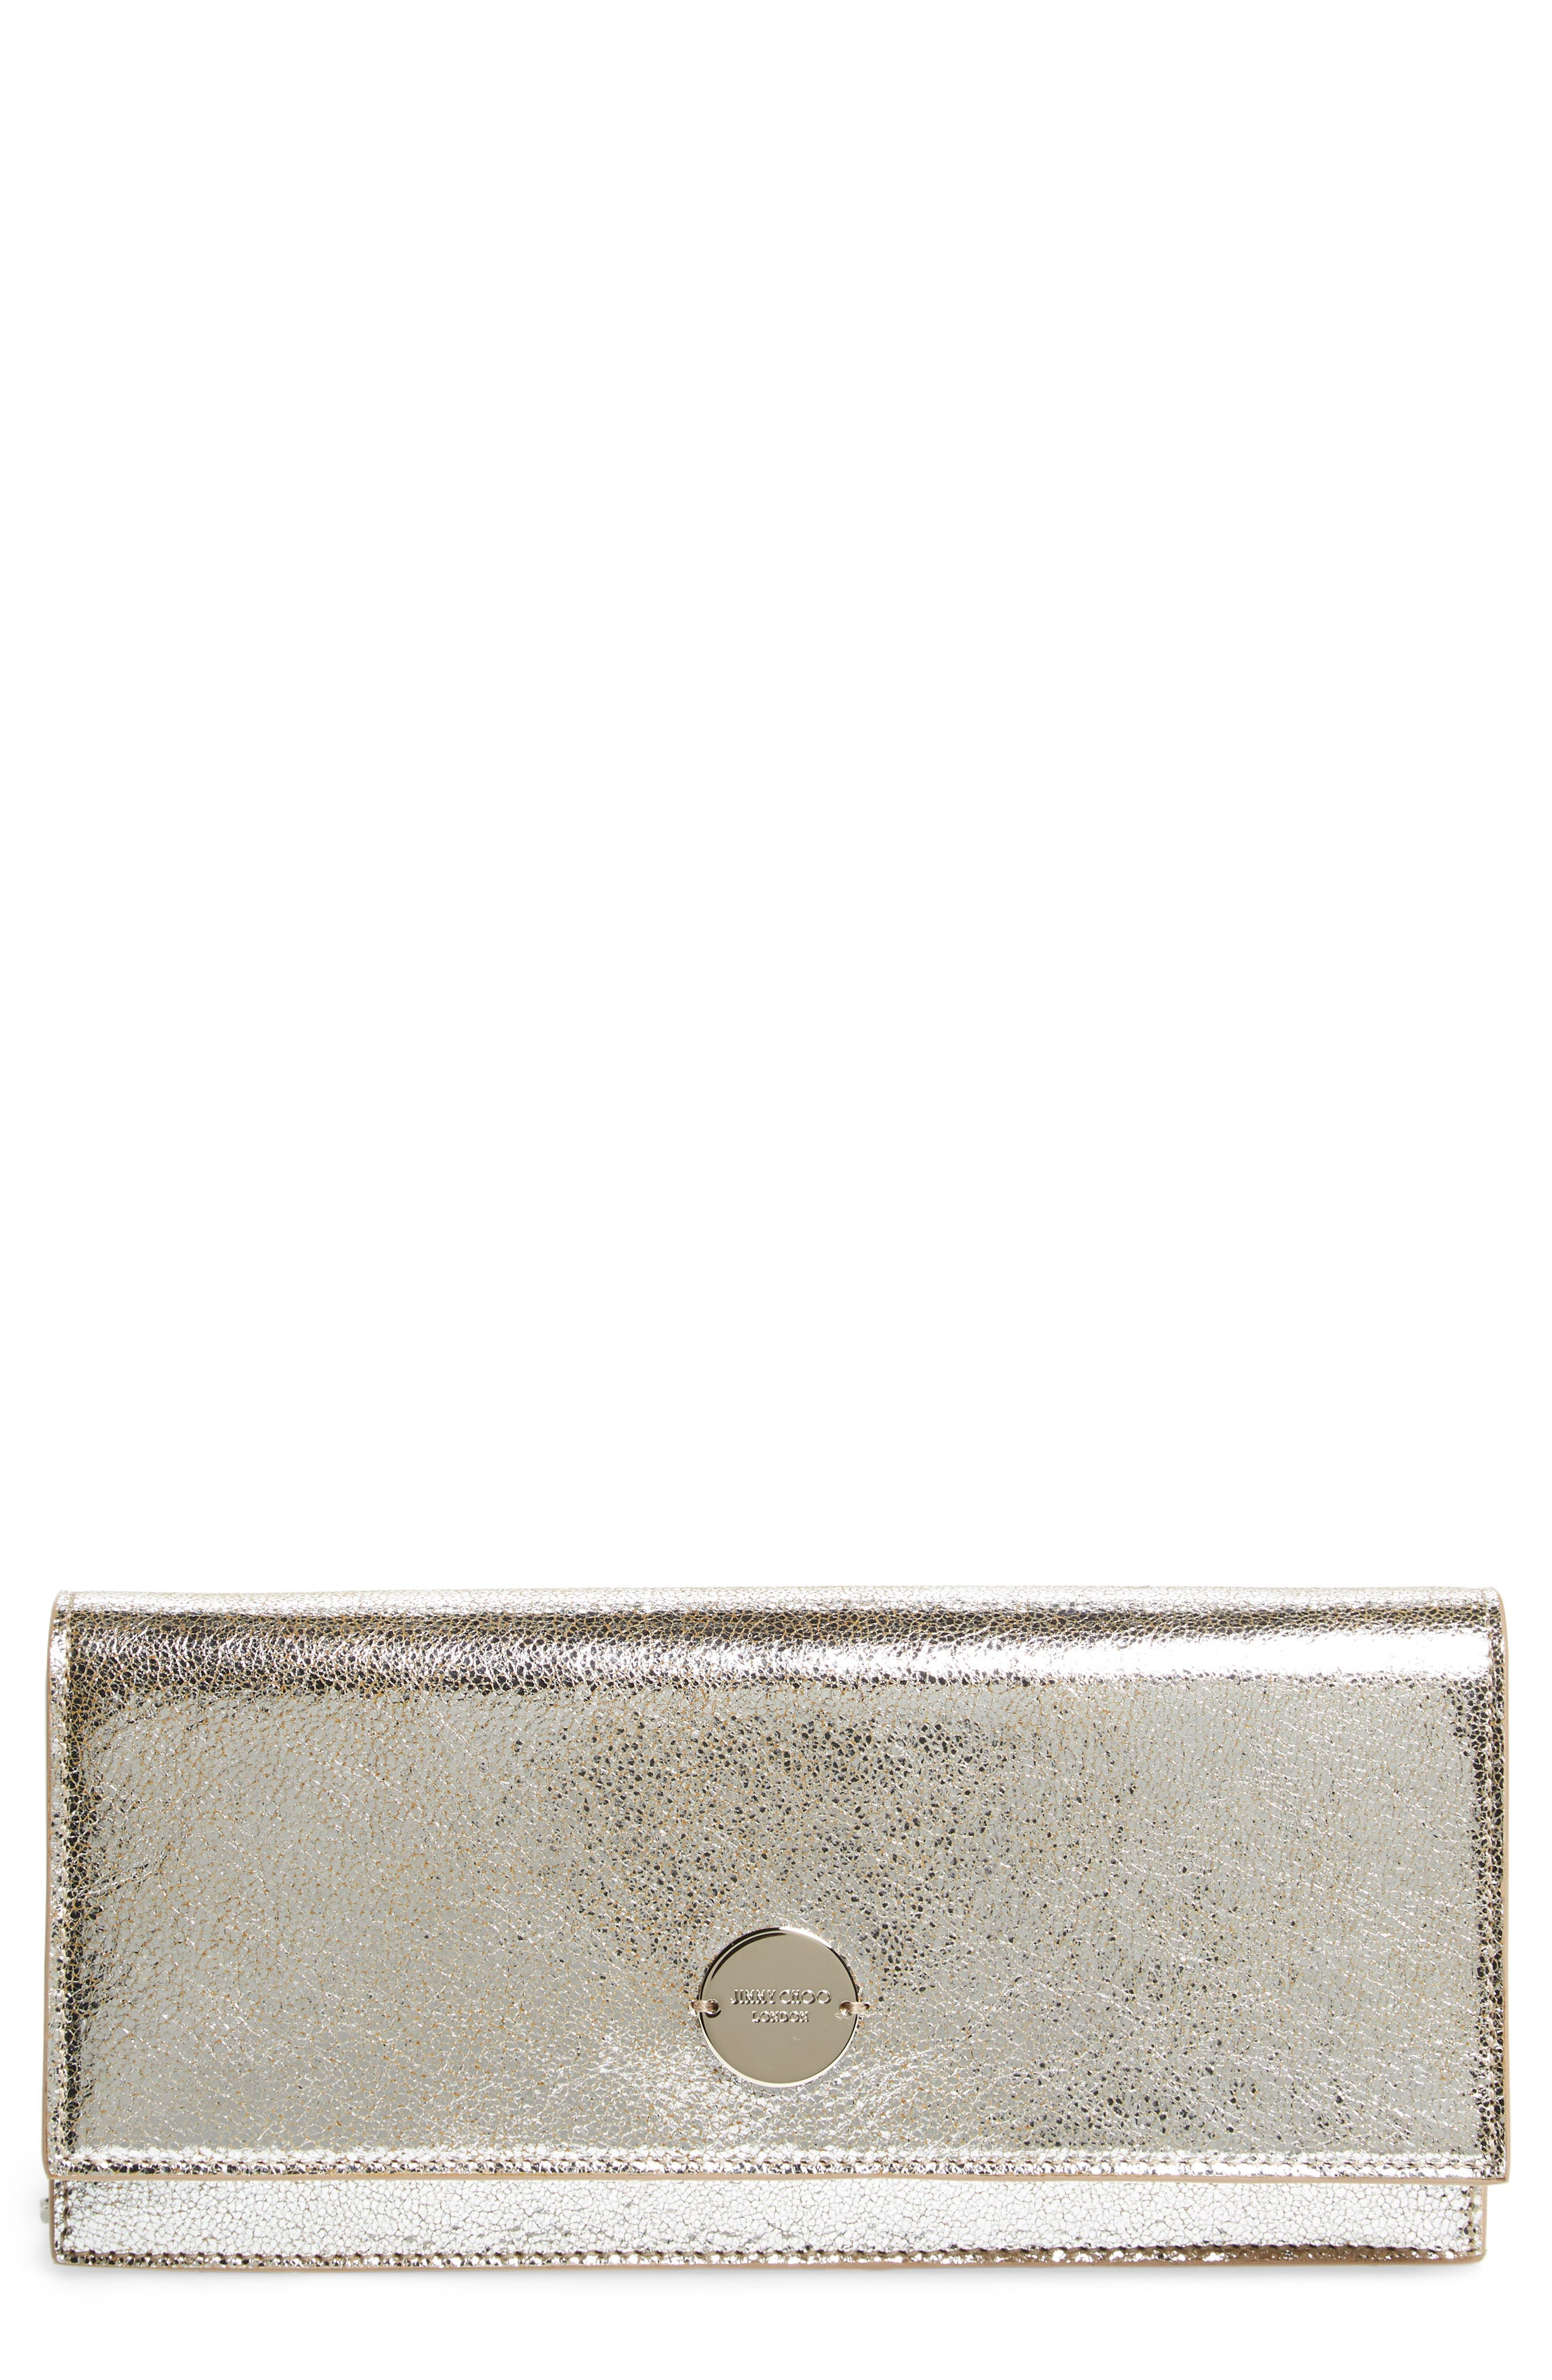 Alternate Image 1 Selected - Jimmy Choo Fie Metallic Leather Clutch